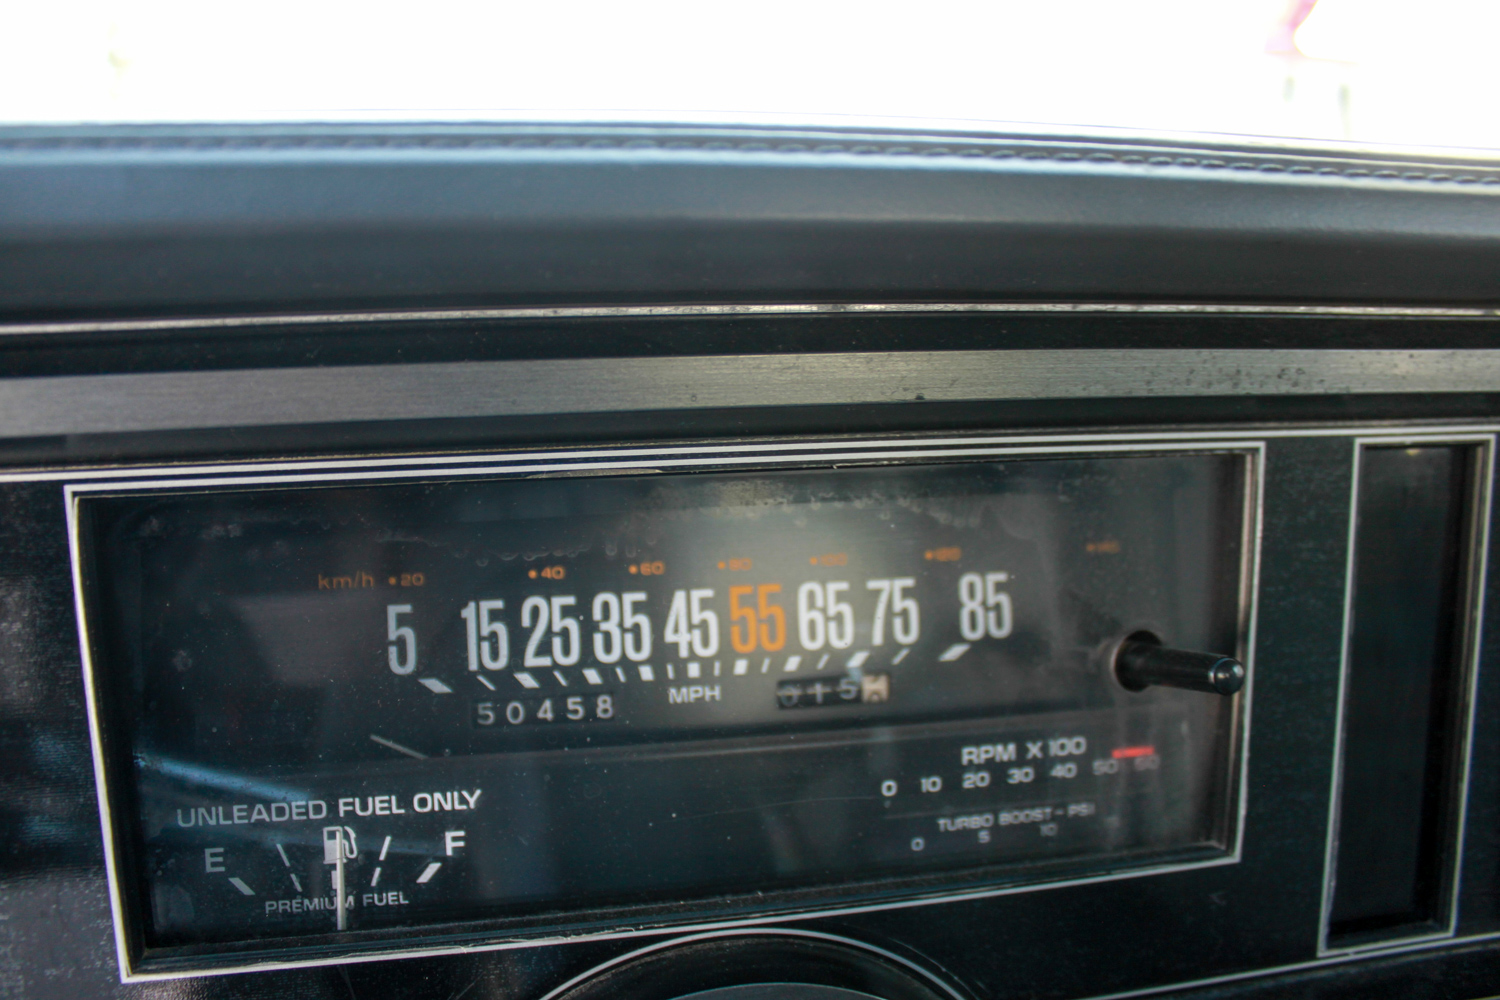 1987 Buick turbo-T gauges